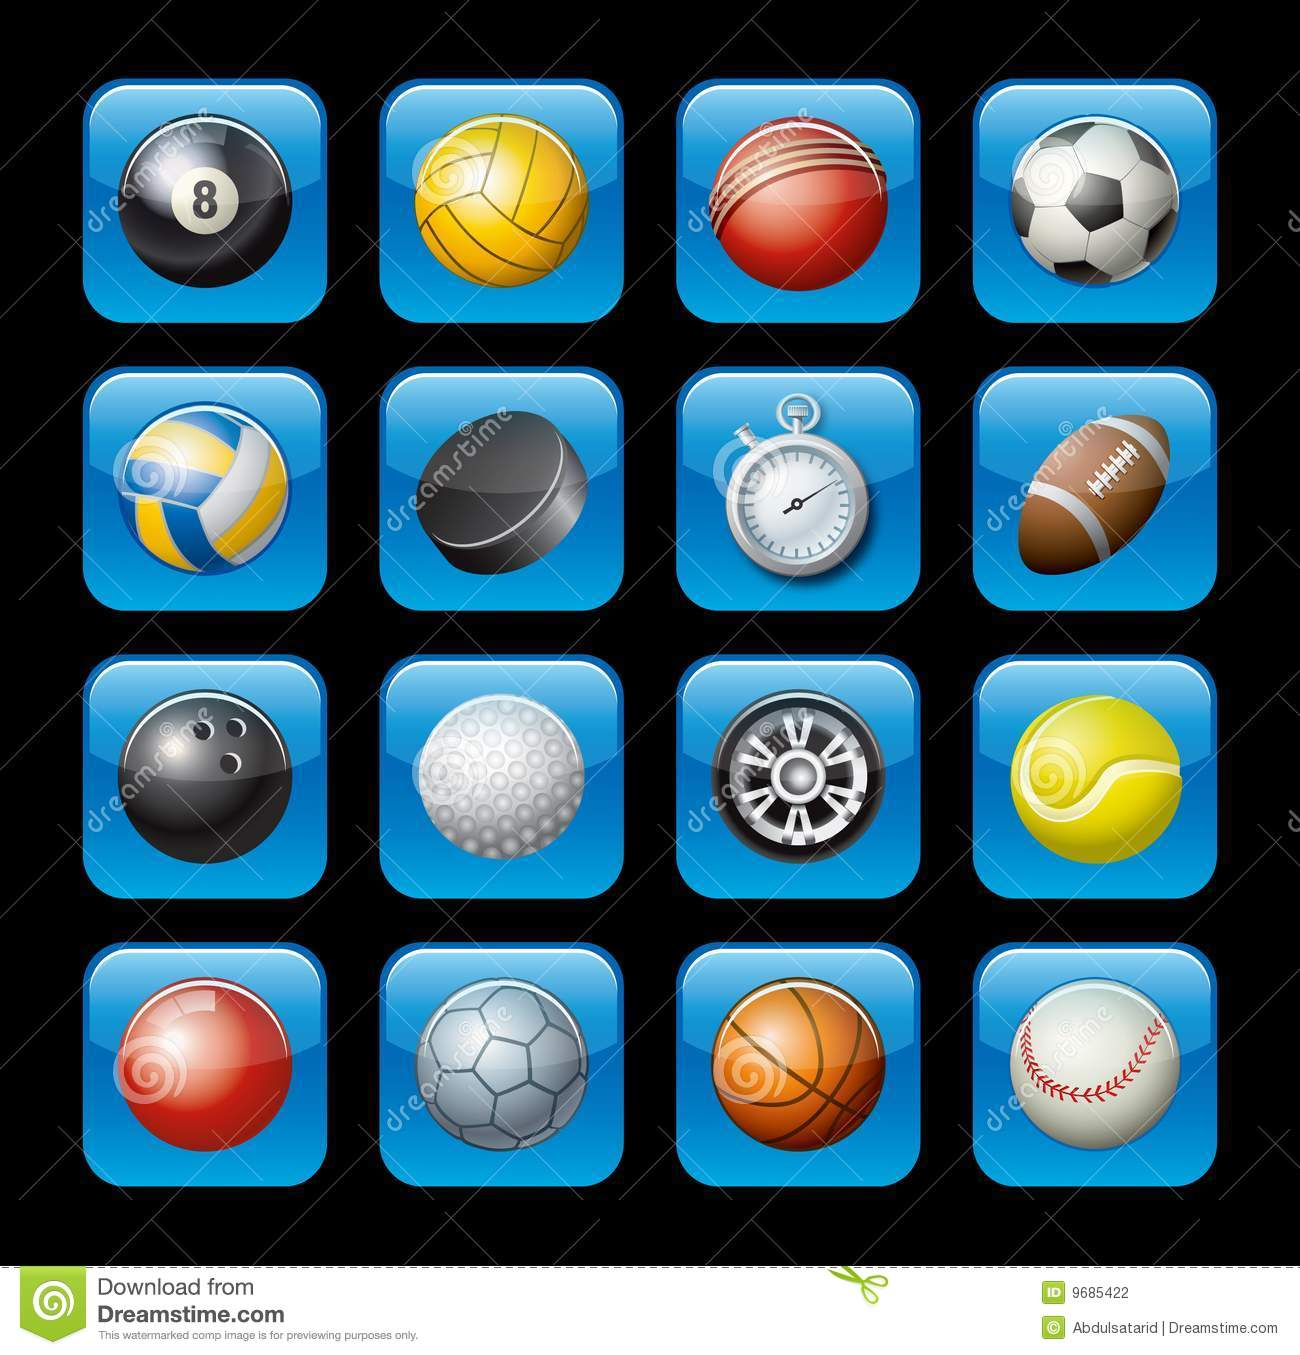 sports-equipment-icons-9685422.jpg